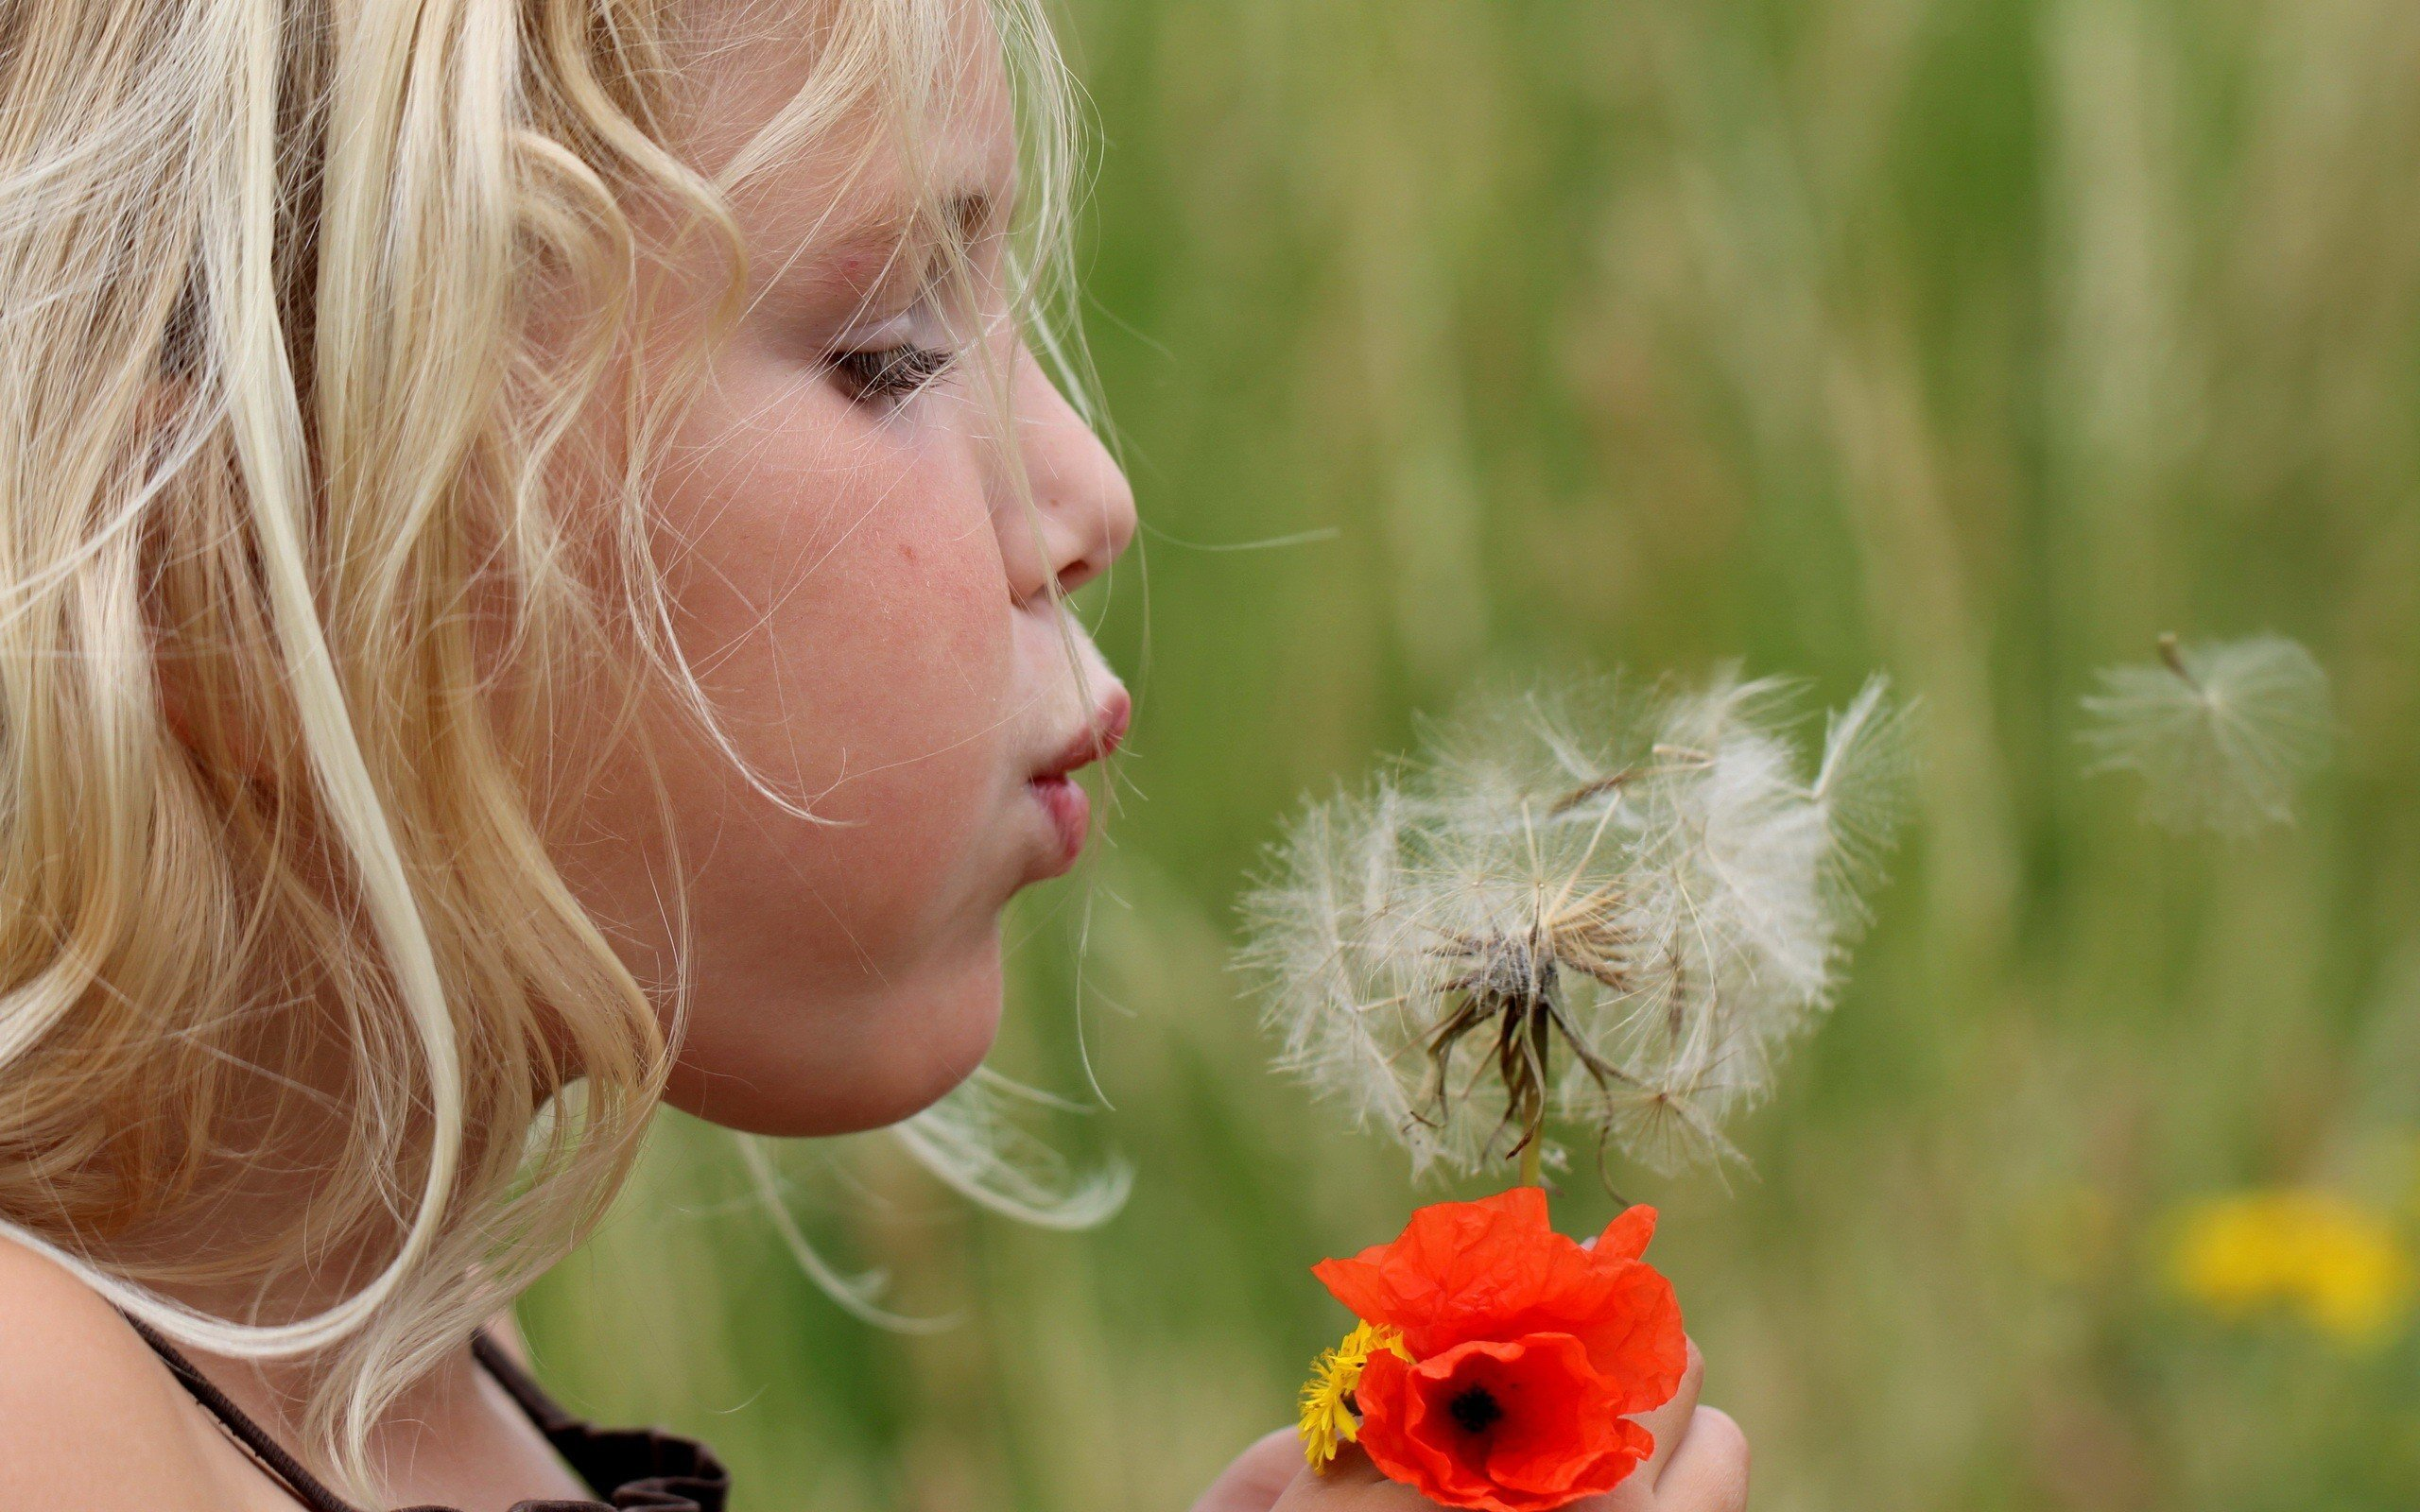 Girl blowing on a dandelion flower wallpapers and images   wallpapers 2560x1600